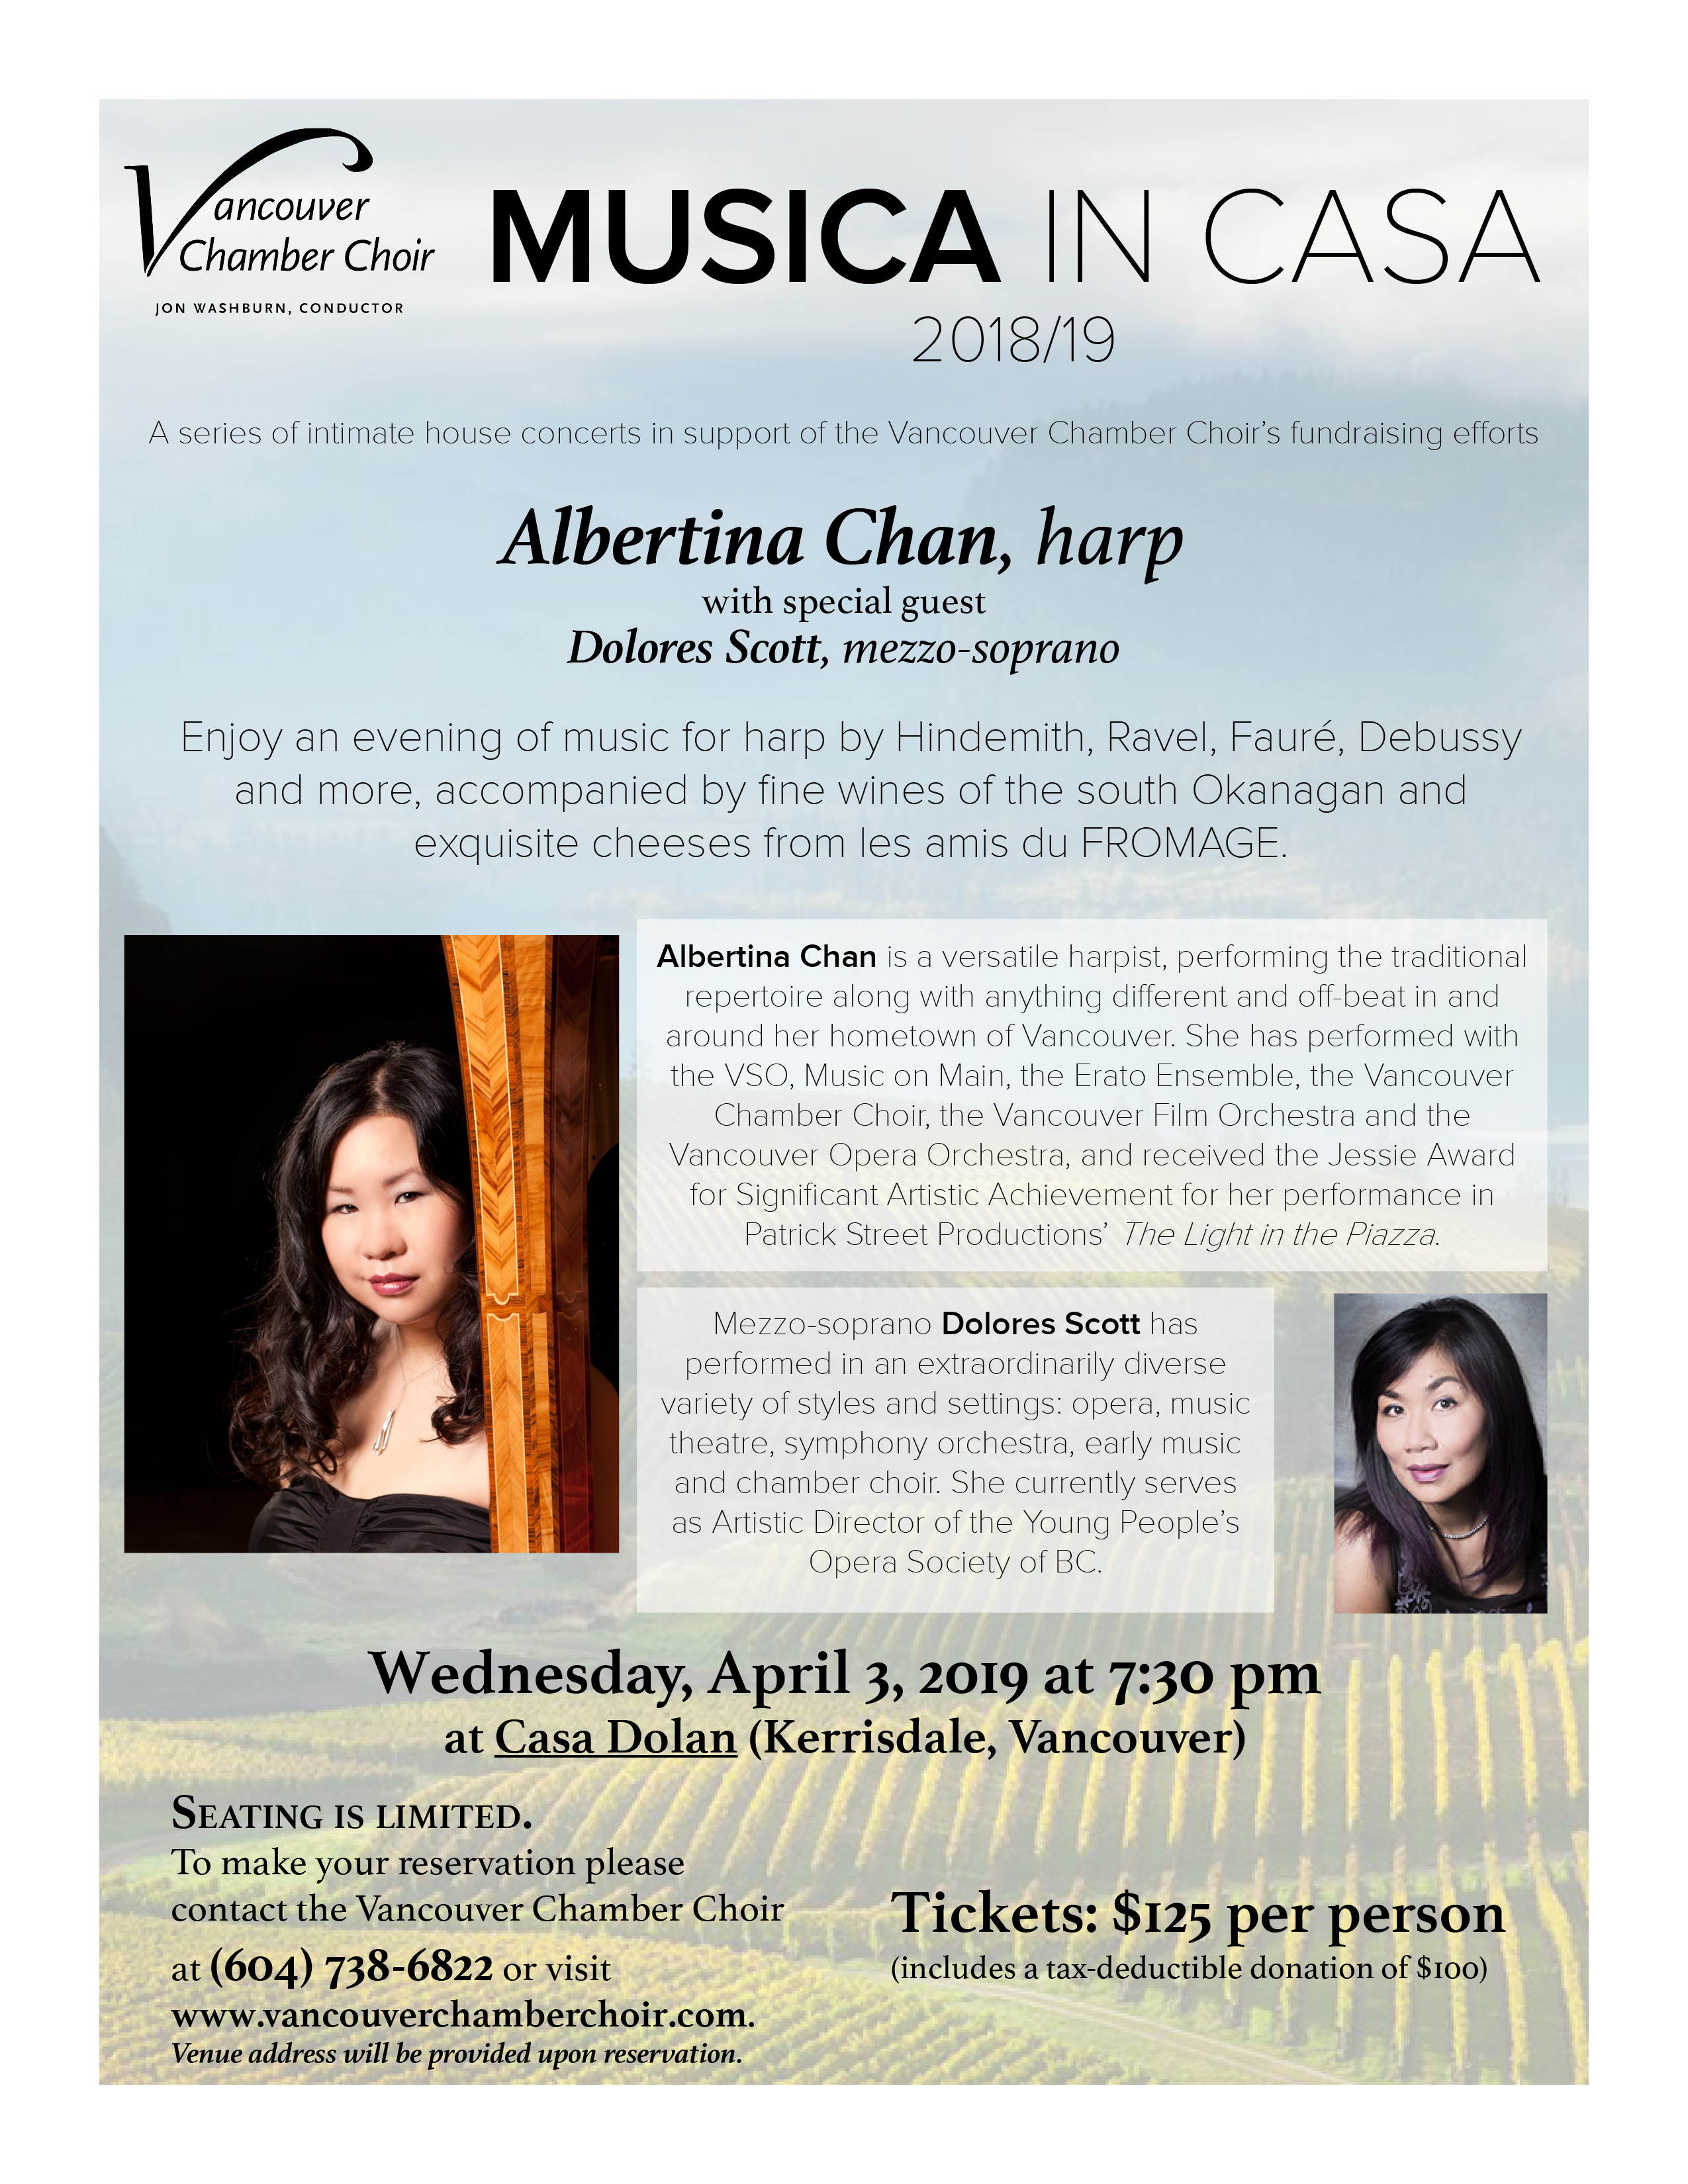 Musica in casa with Albertina Chan and Dolores Scott